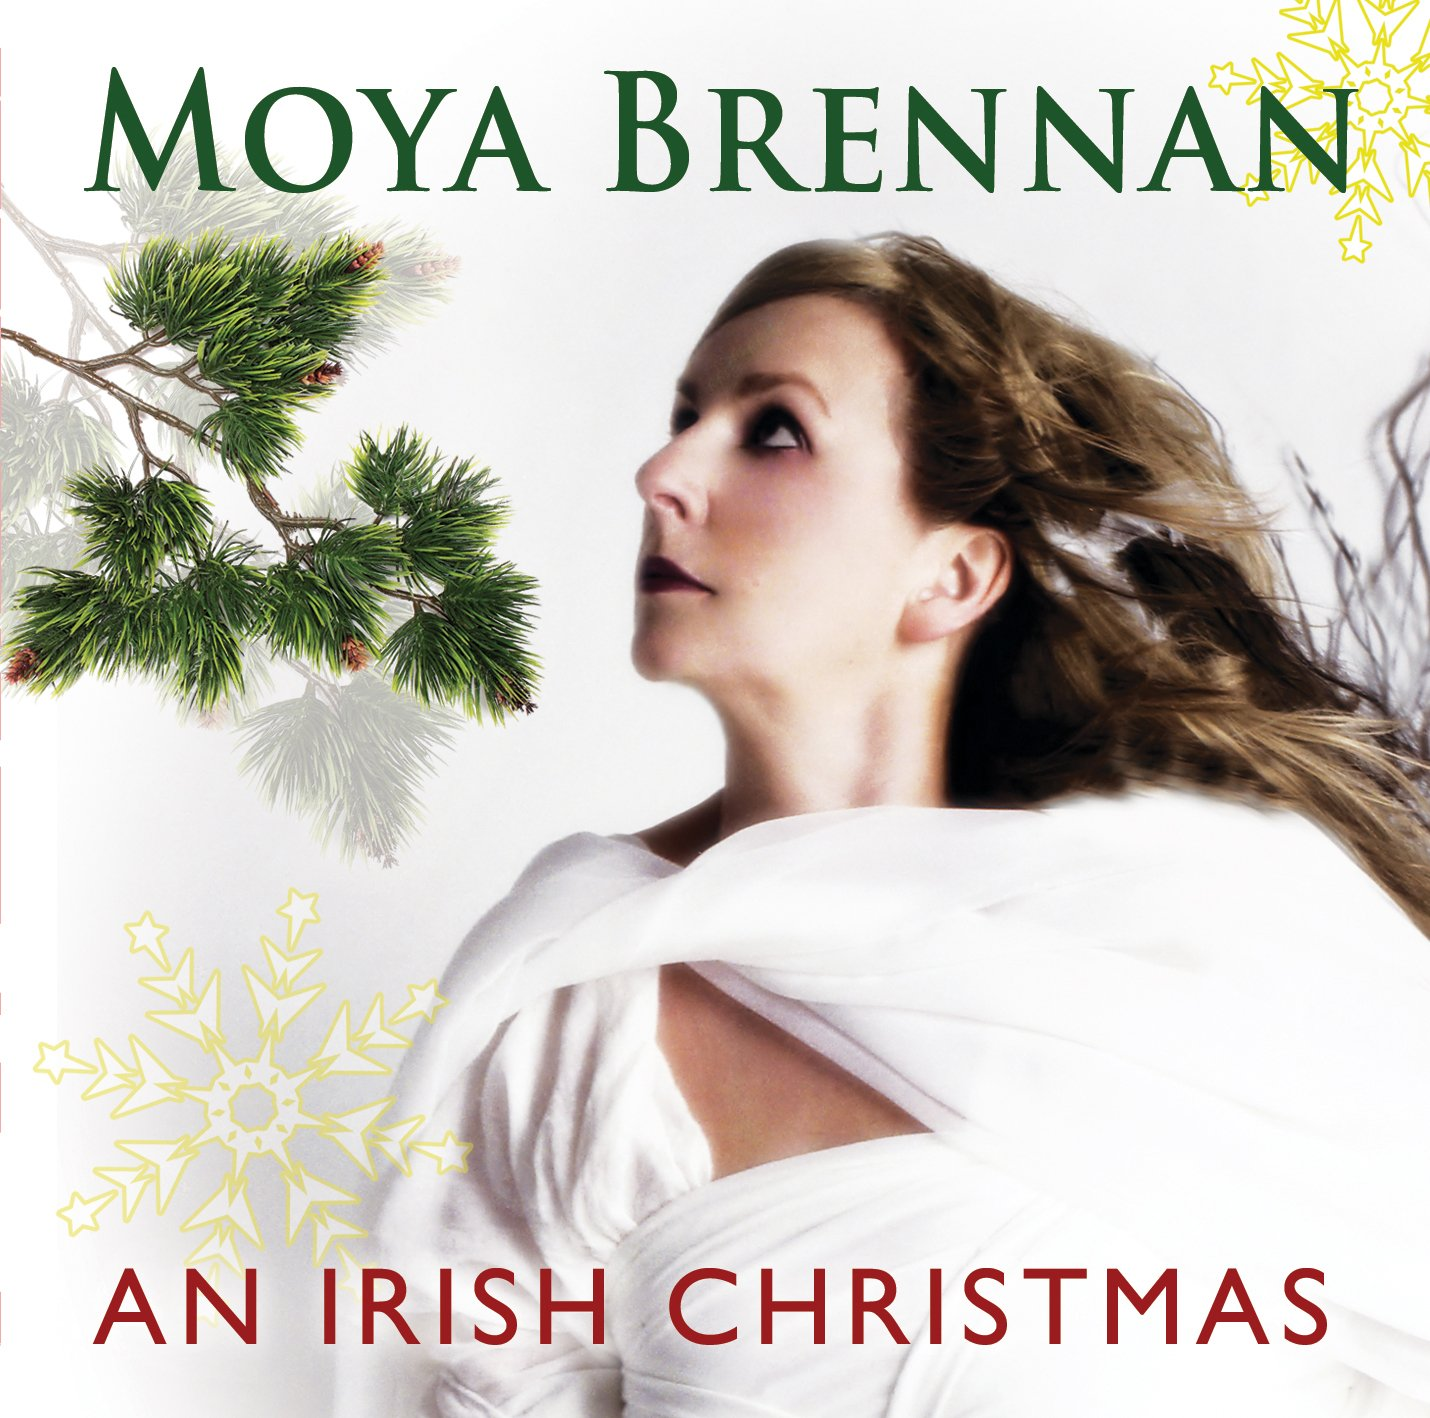 Moya Brennan - An Irish Christmas [2013 Edition] - Amazon.com Music